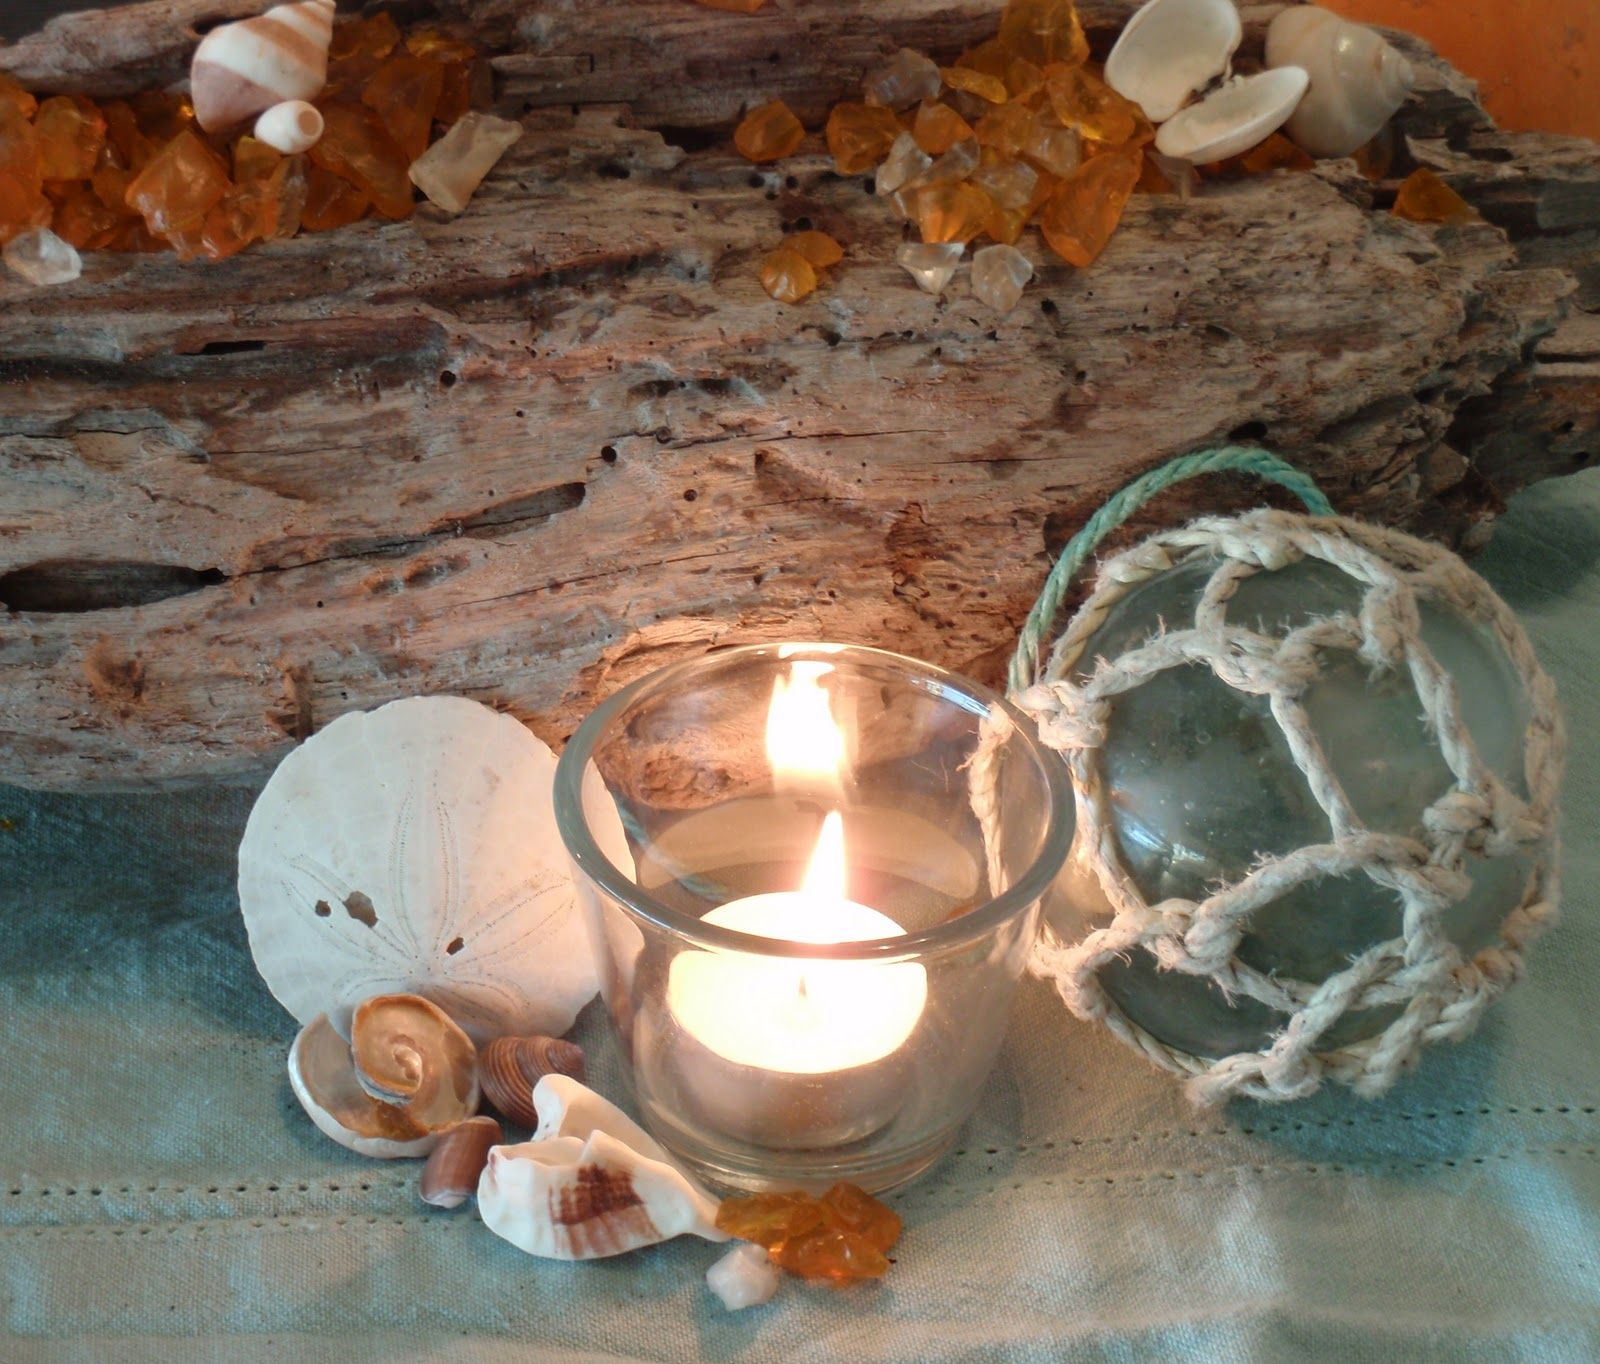 Coastal centerpiece with found driftwood and shells